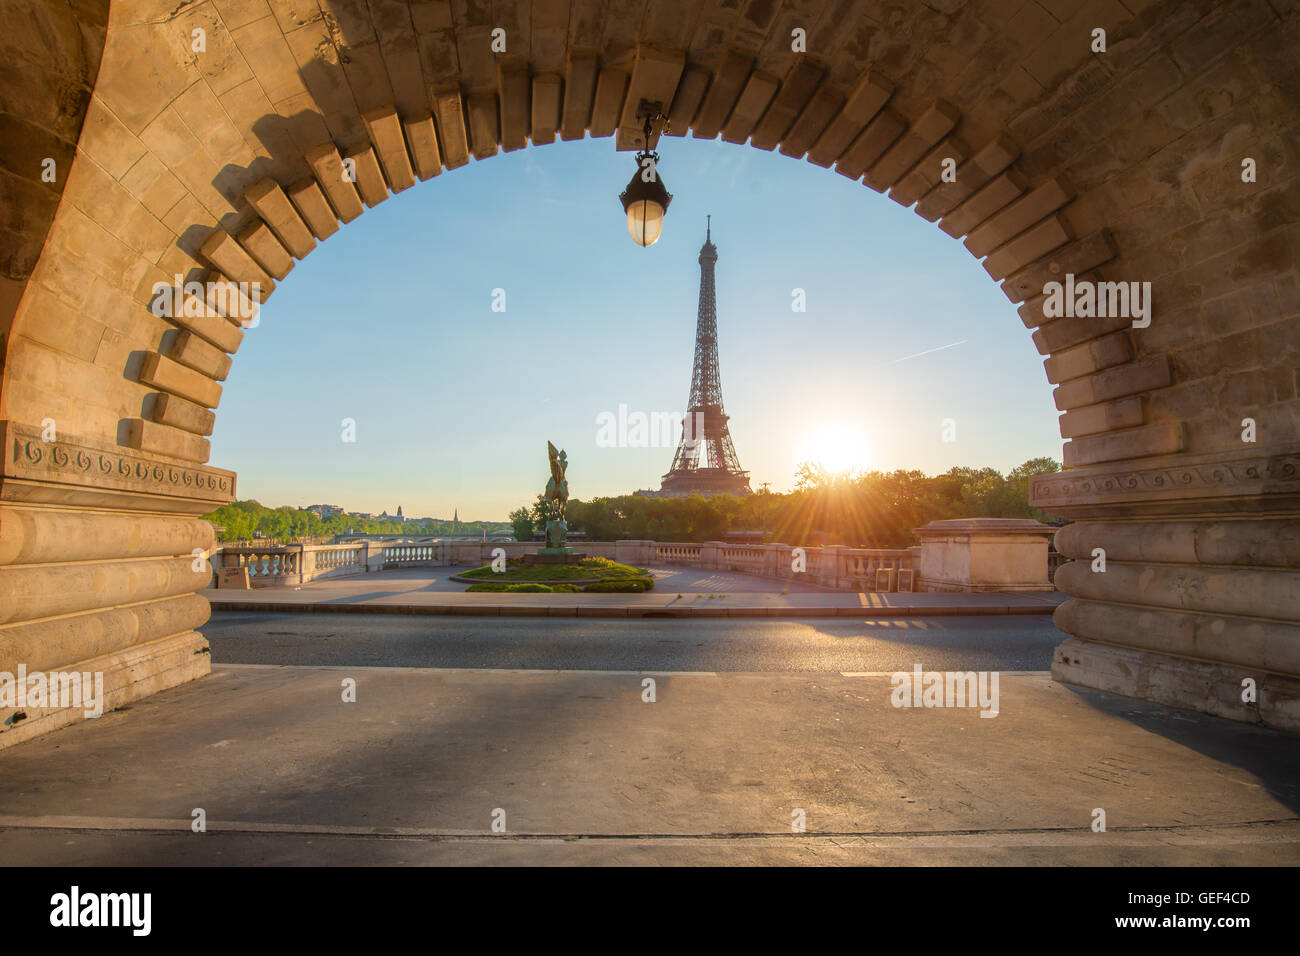 Eiffel tower at Paris from the river Seine in morning. Paris, France. Eiffel Tower is iron lattice tower on the - Stock Image